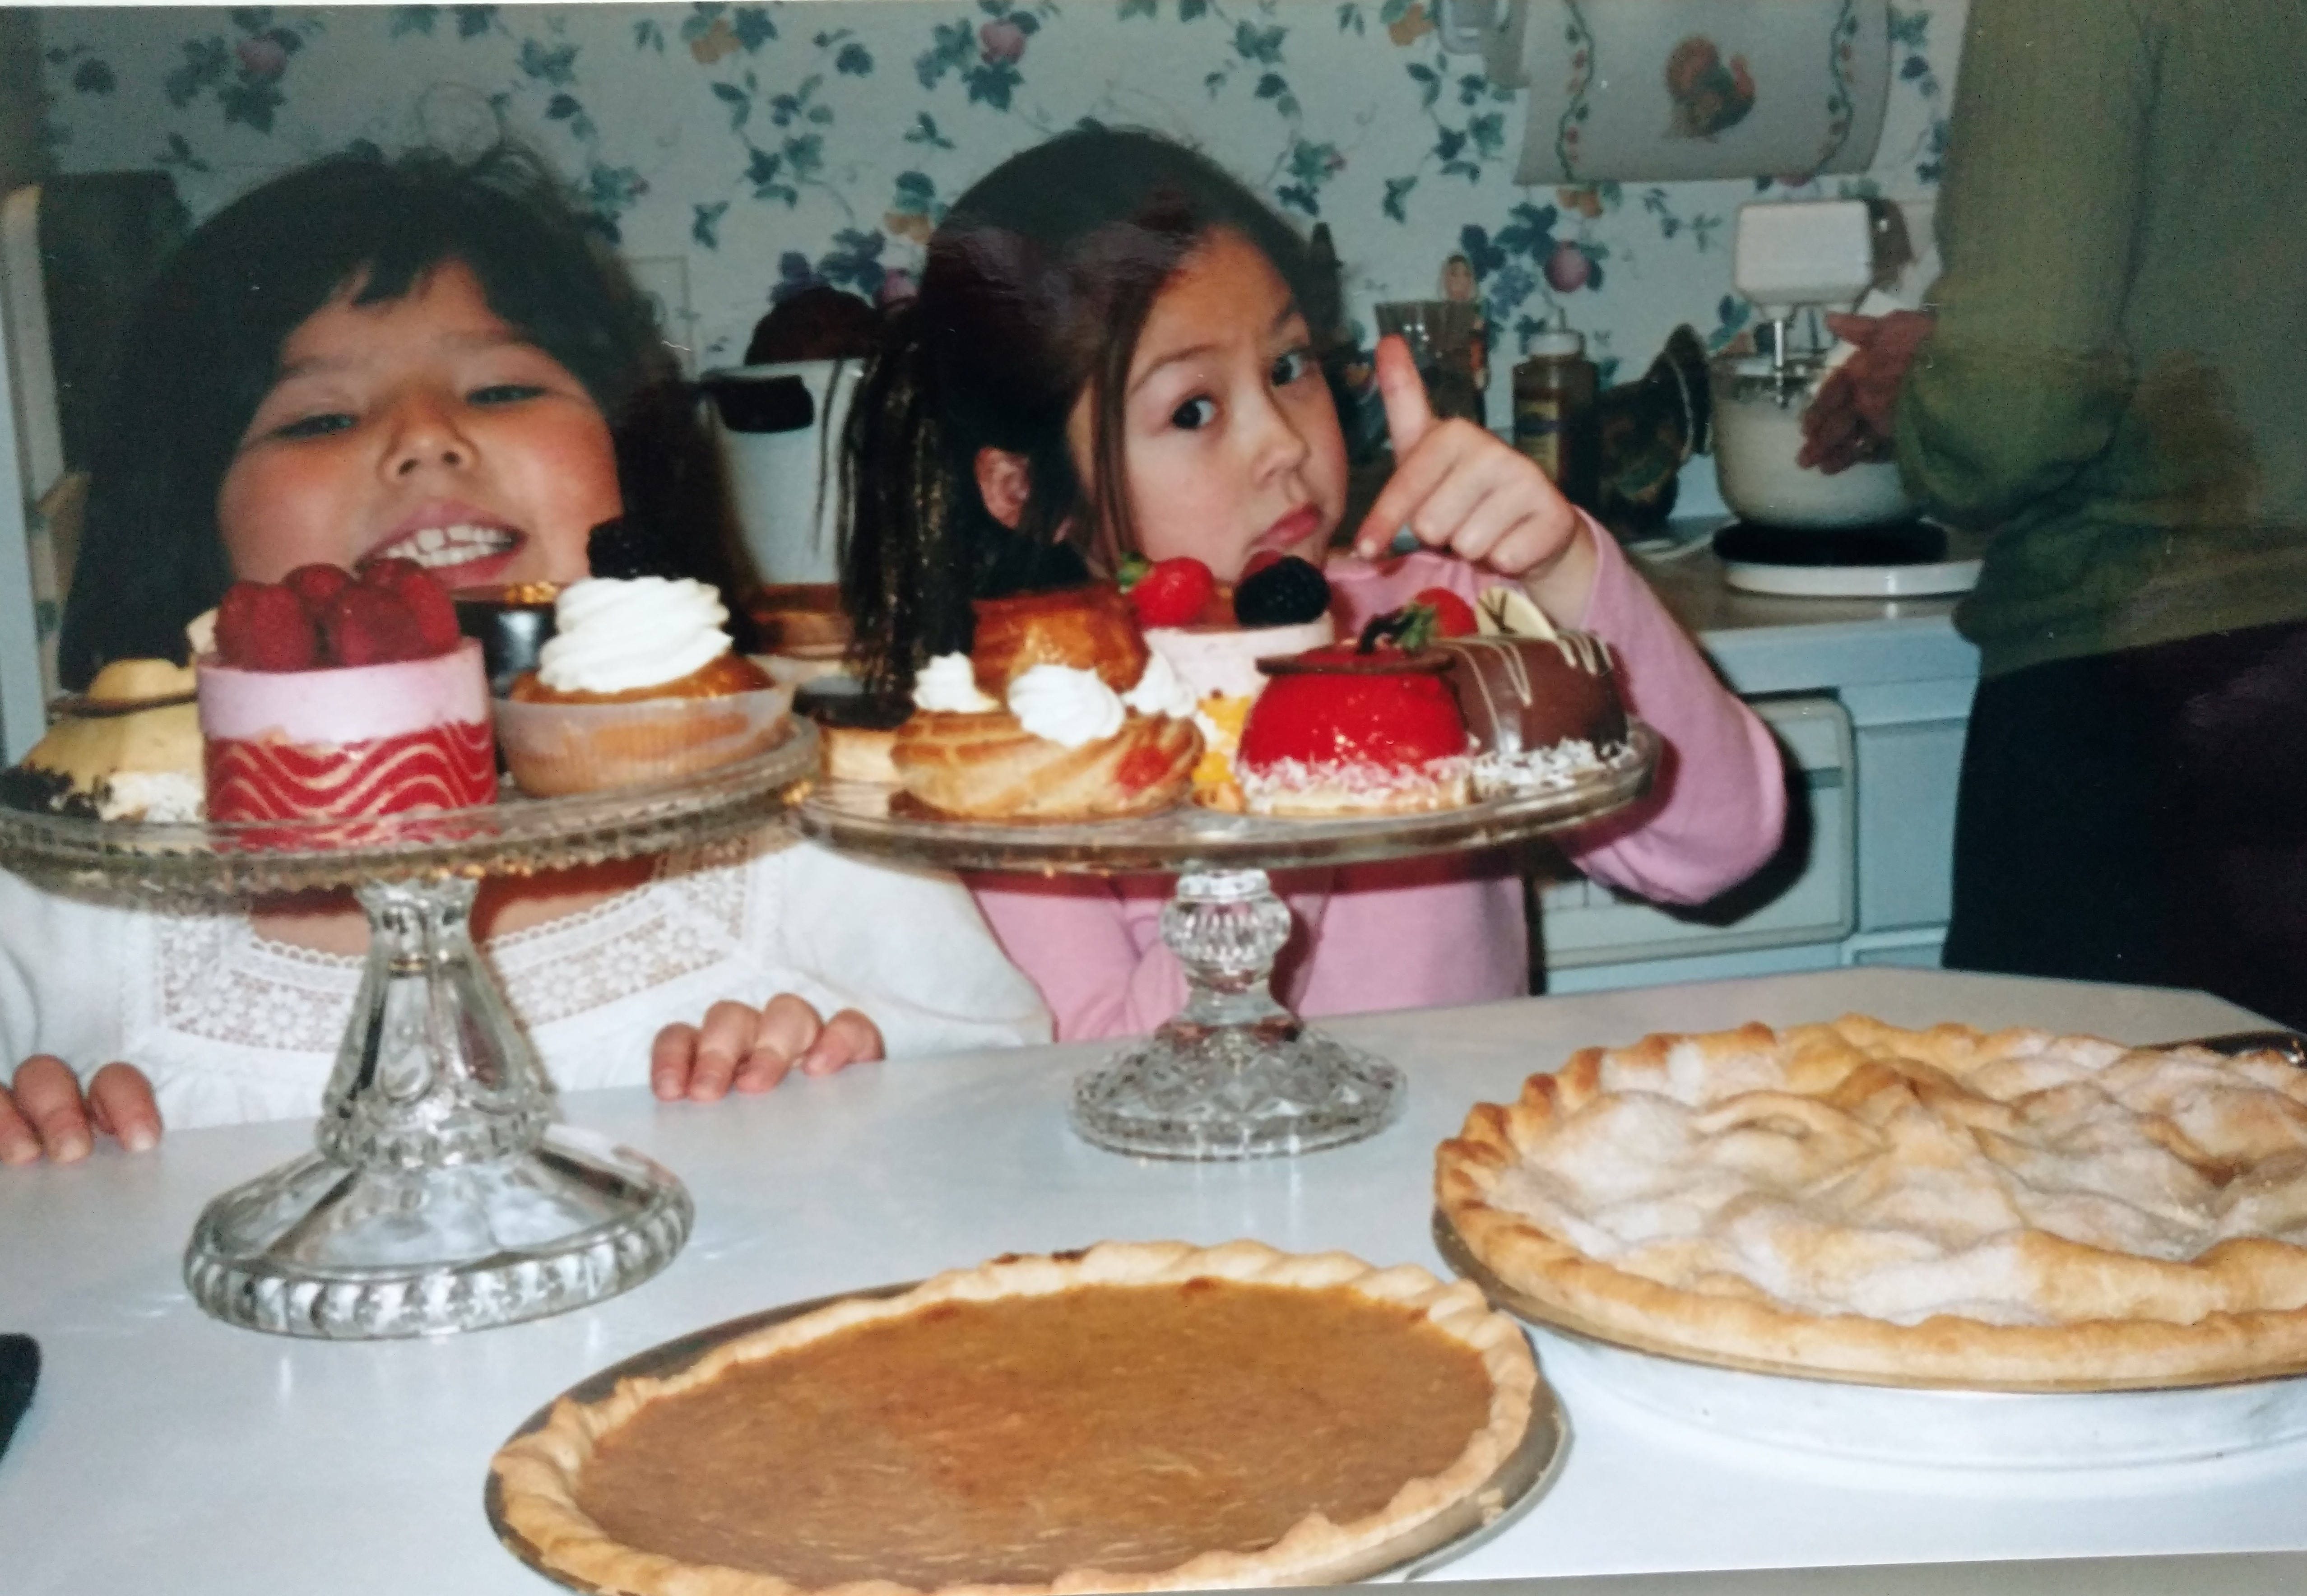 "There is floral wallpaper in the background. And the back of a woman in a green sweater, making whipped cream in a mixer. Two young half Chinese girls stand in front (my sister and I). Their heads barely peak above the cake plates that are filled with colorful pastries. Some are topped with whipped cream and berries, others with chocolate ganache. In the foreground sits freshly baked pumpkin and apple pies. The girl on the left, slightly younger smiles. While the older on the right points to the pastries with a face that looks like she's saying, ""this is the good stuff""."